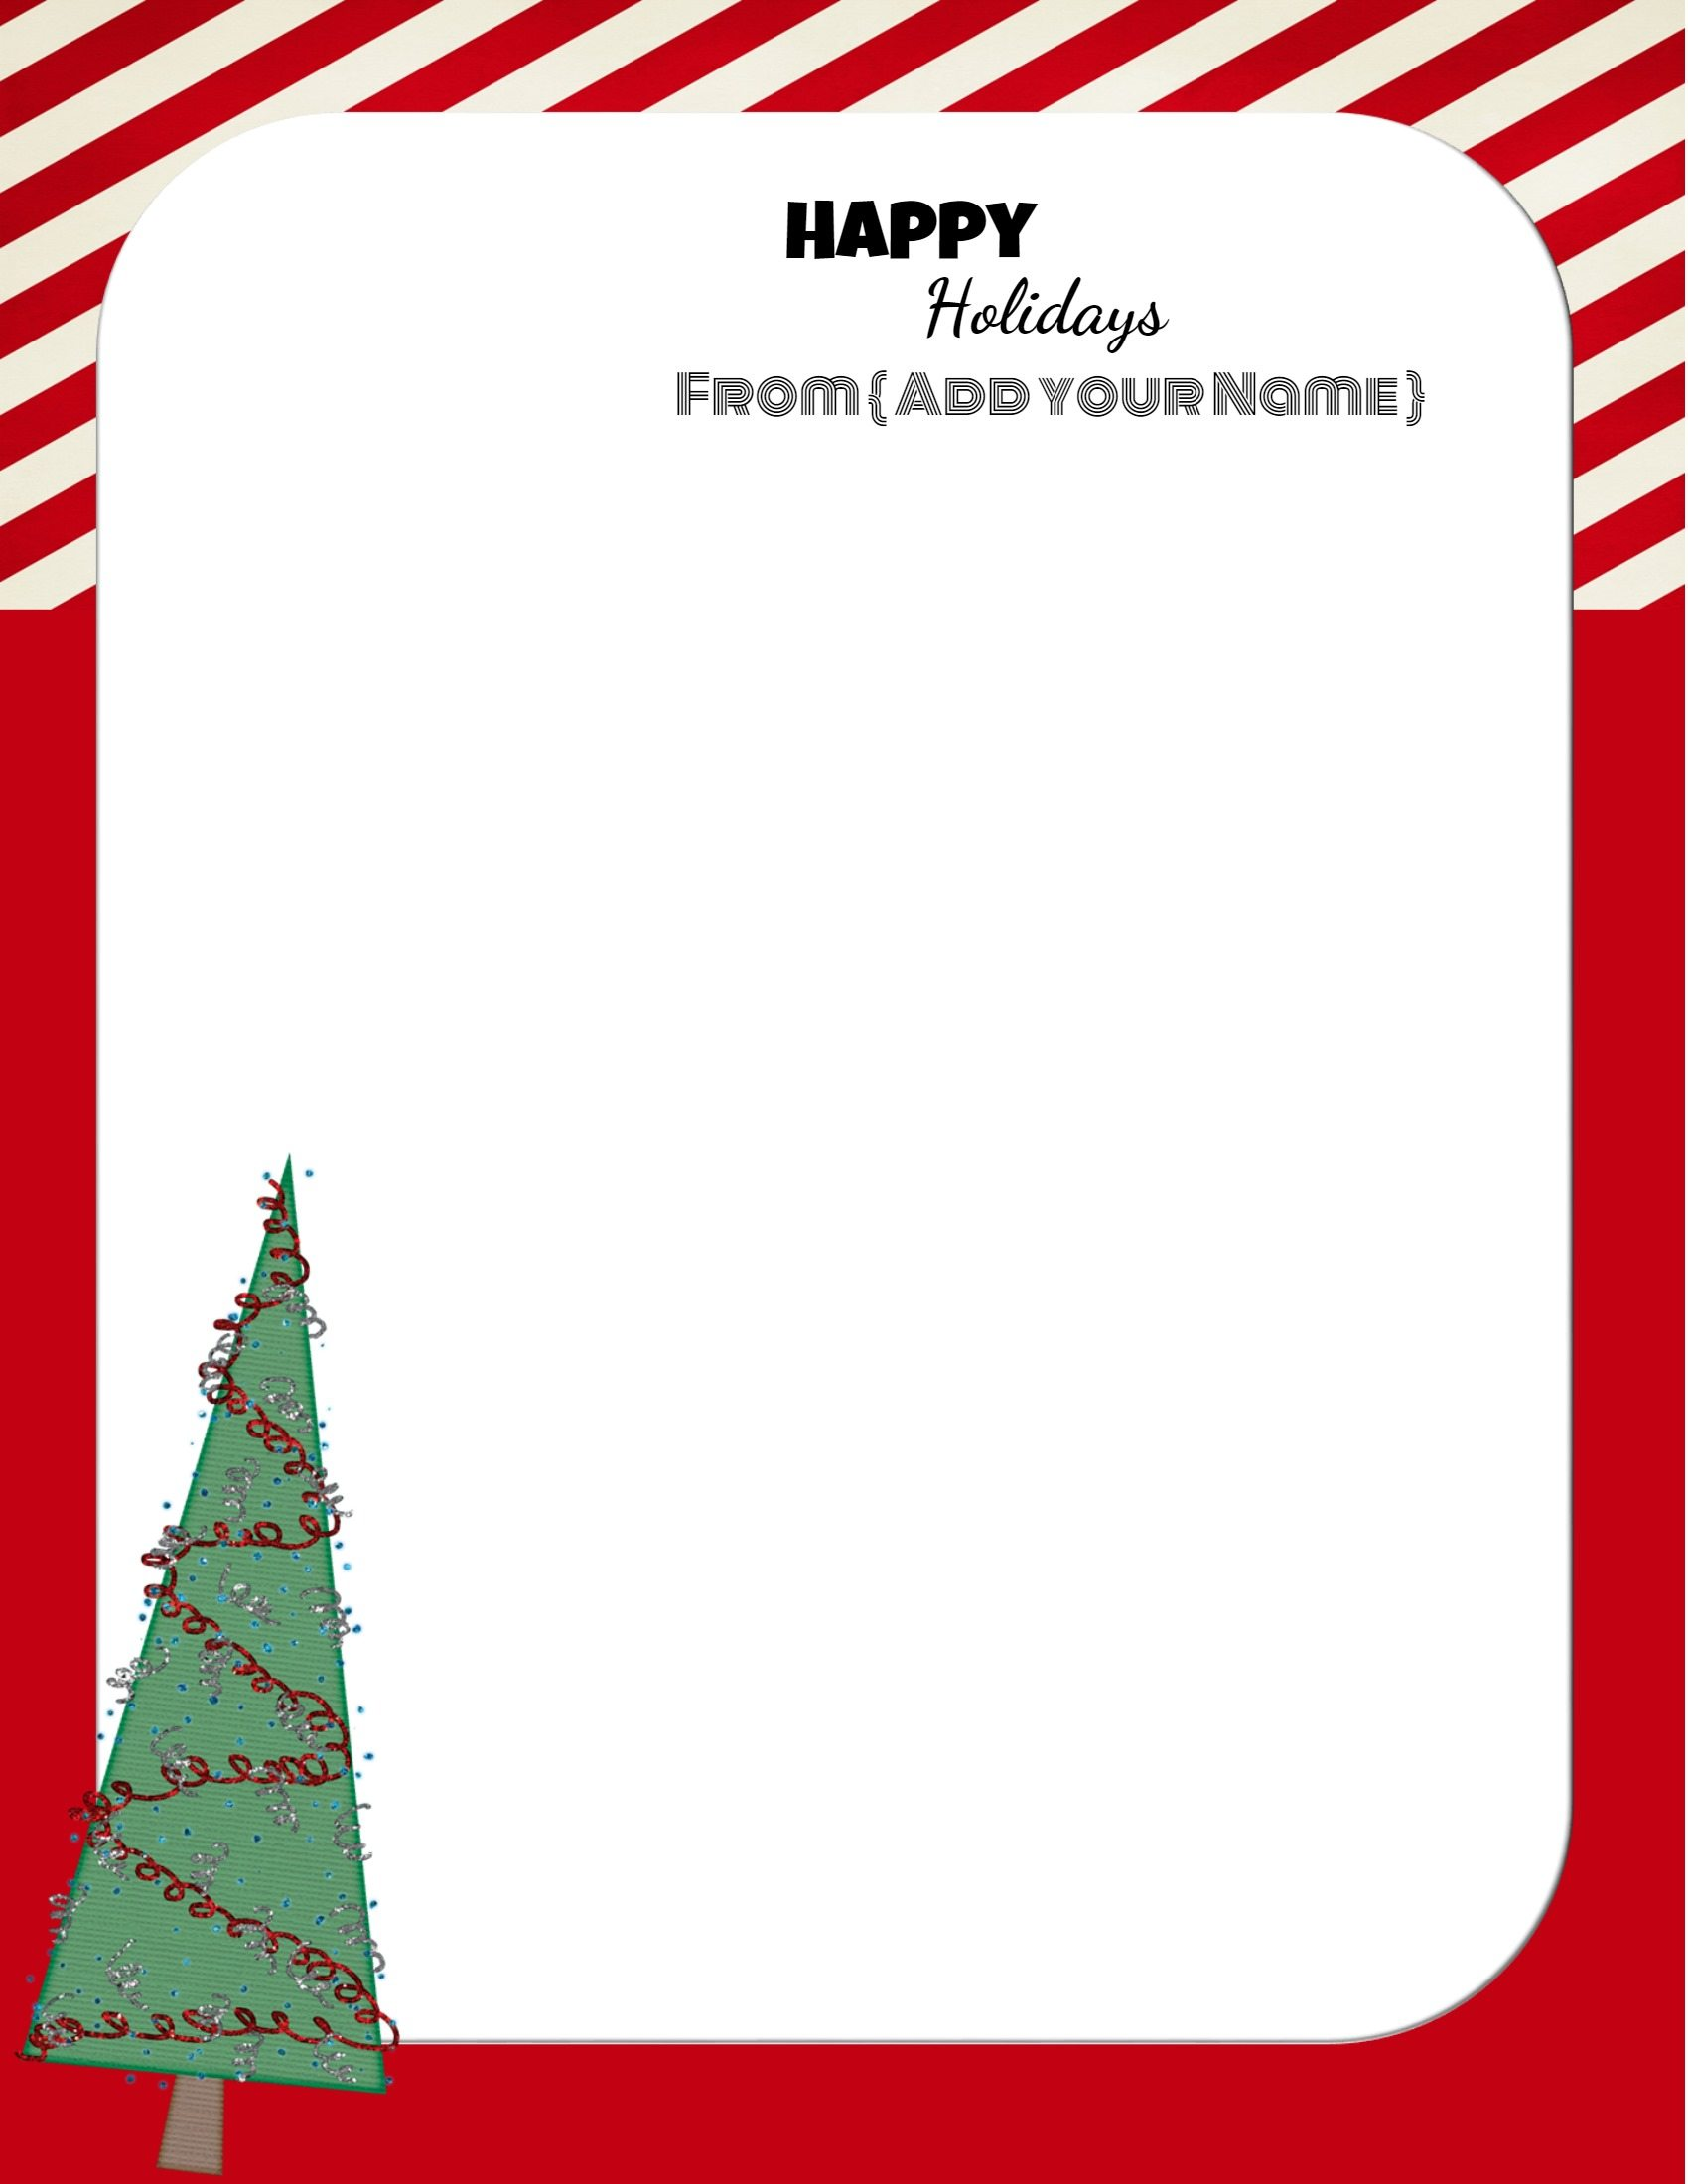 Red and white Christmas stationery with a picture of a Christmas tree